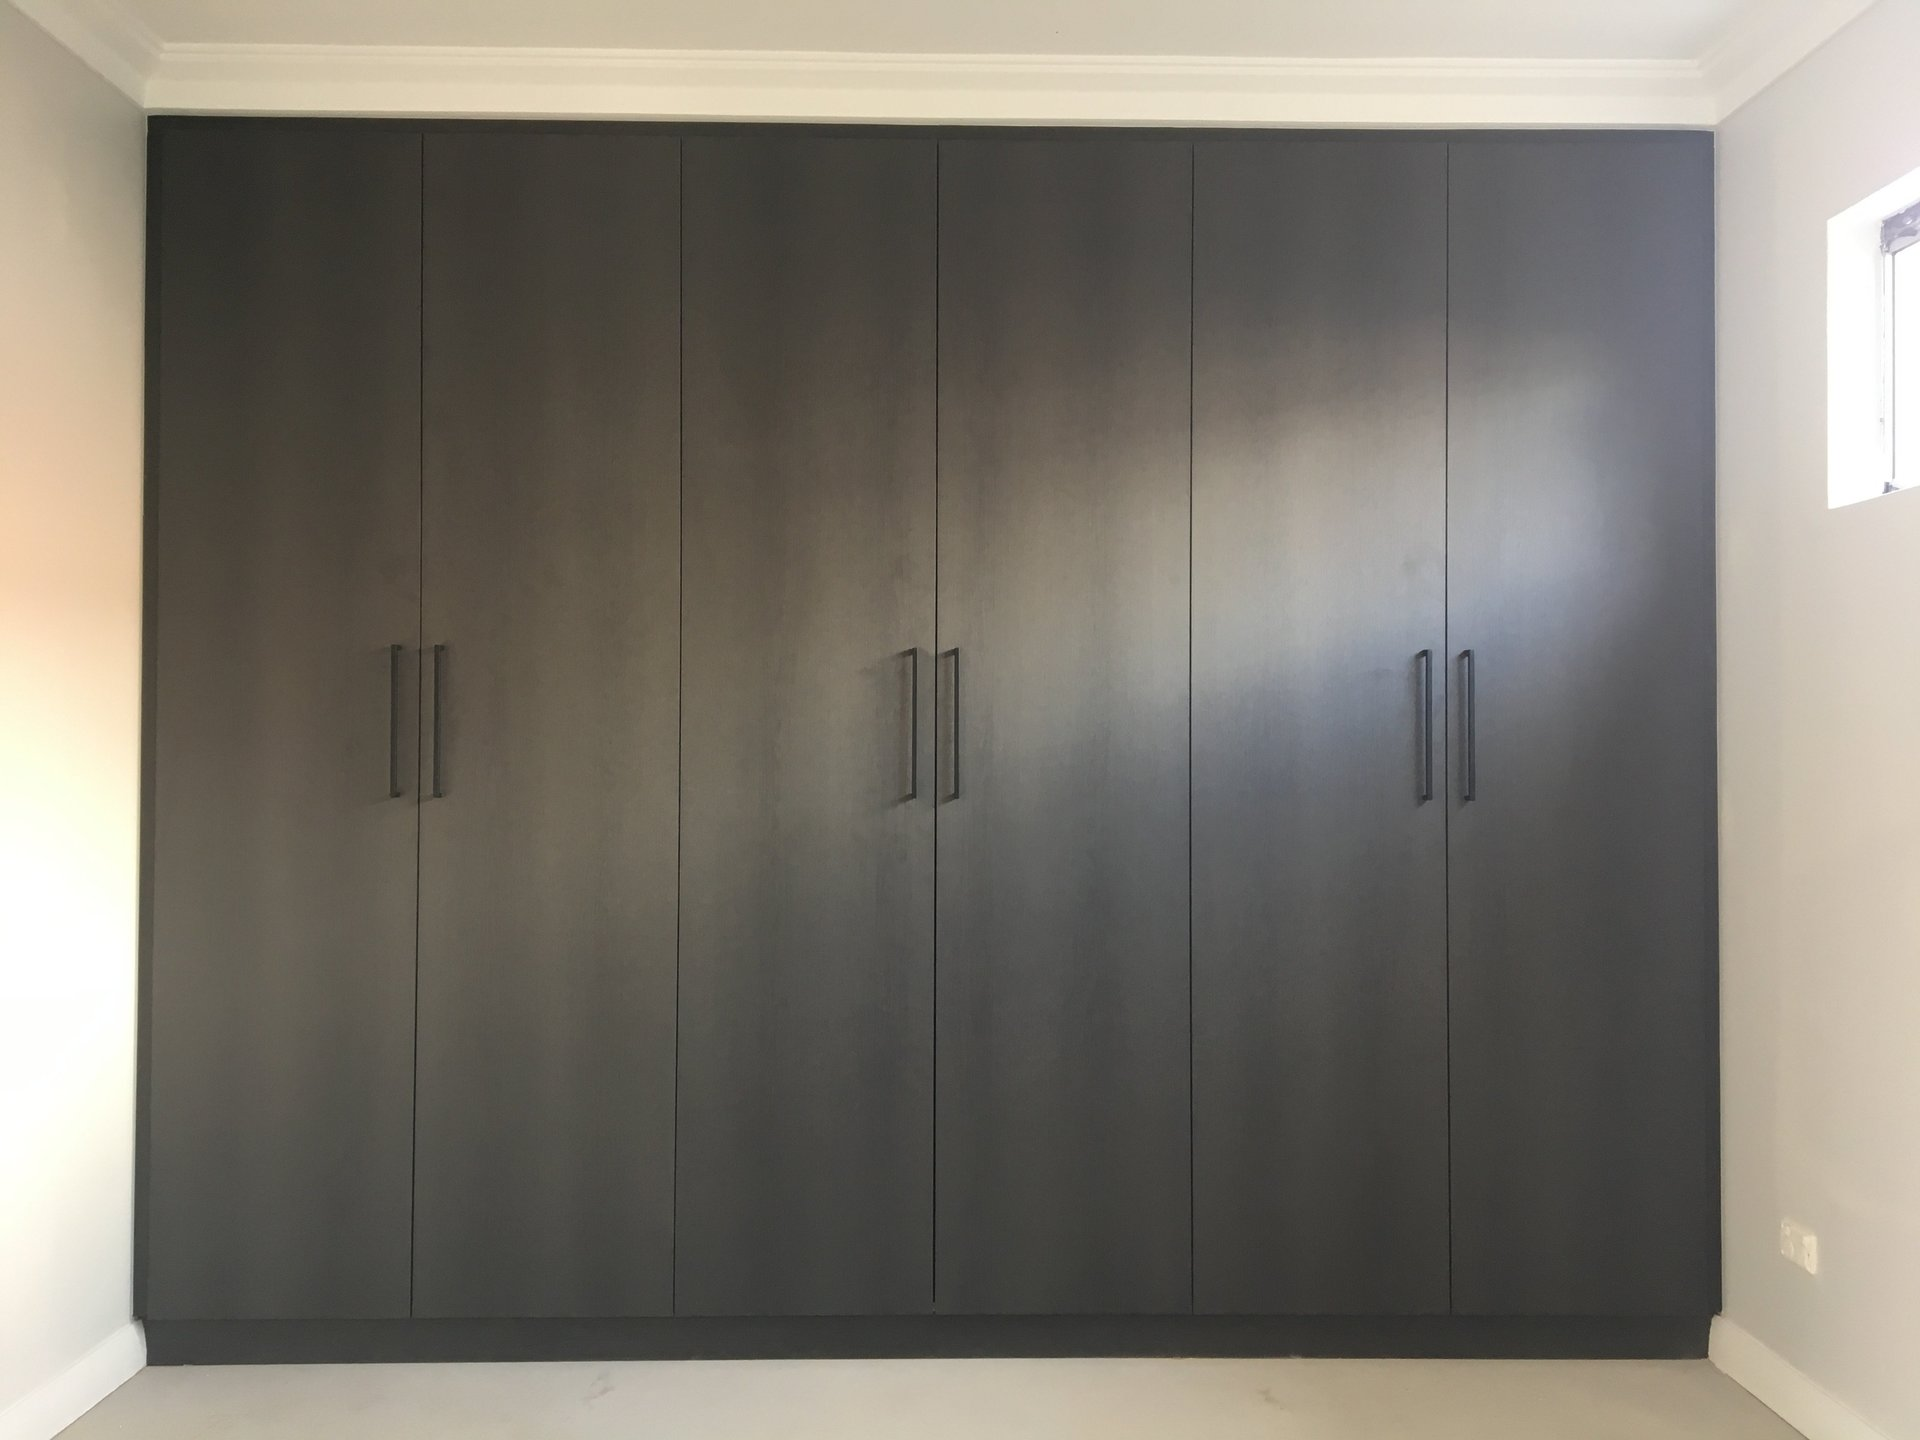 centres shower built in screens slider wardrobes wardrobe cabinets sydney display